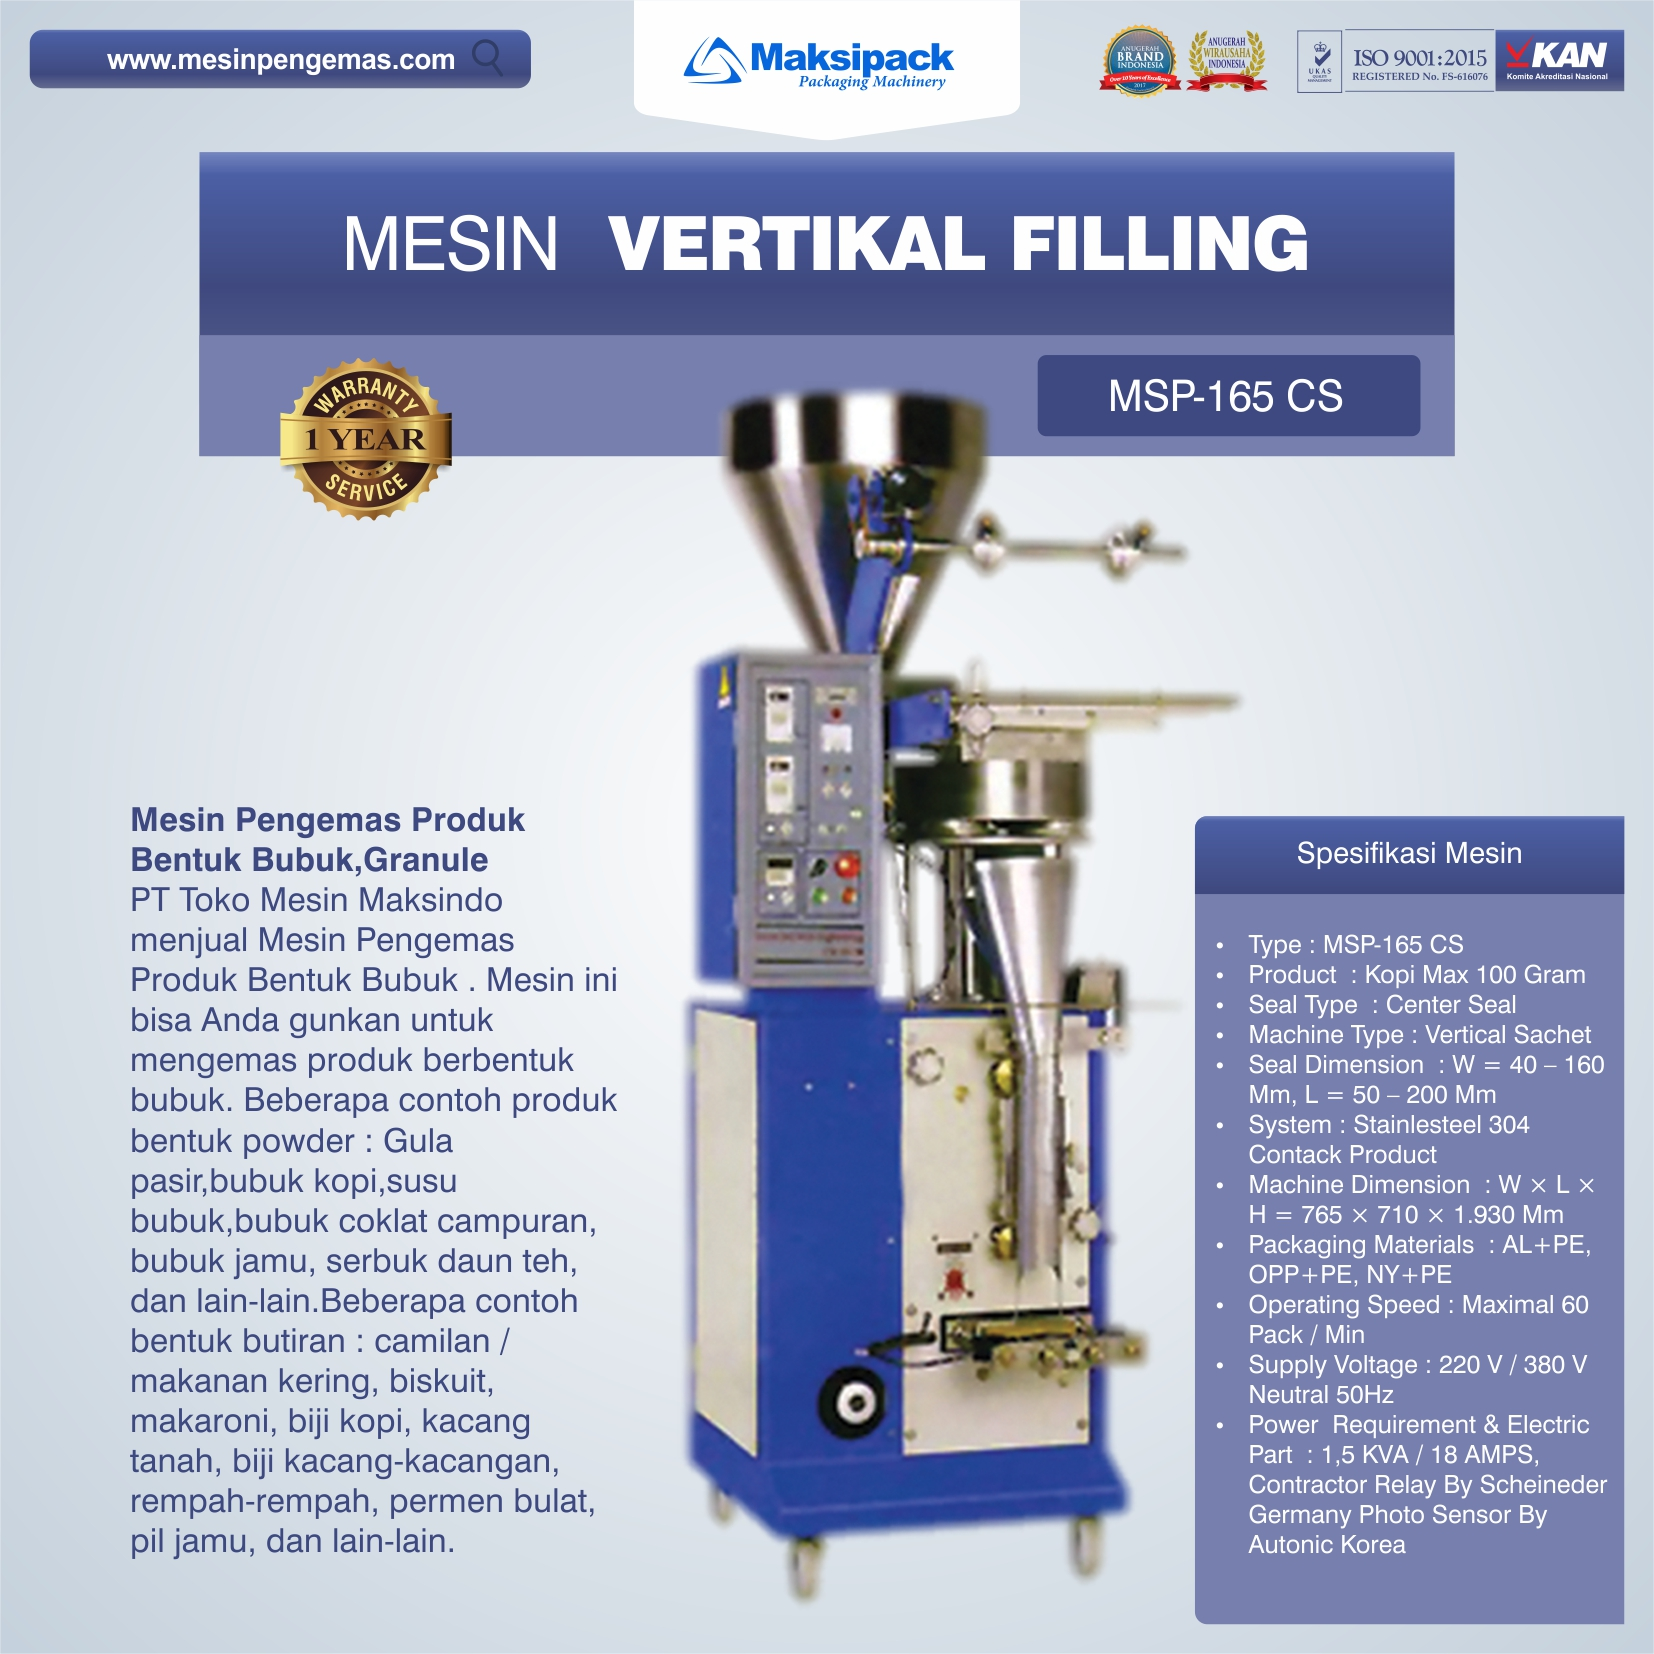 Mesin Vertikal Filling (MSP-165 CS)